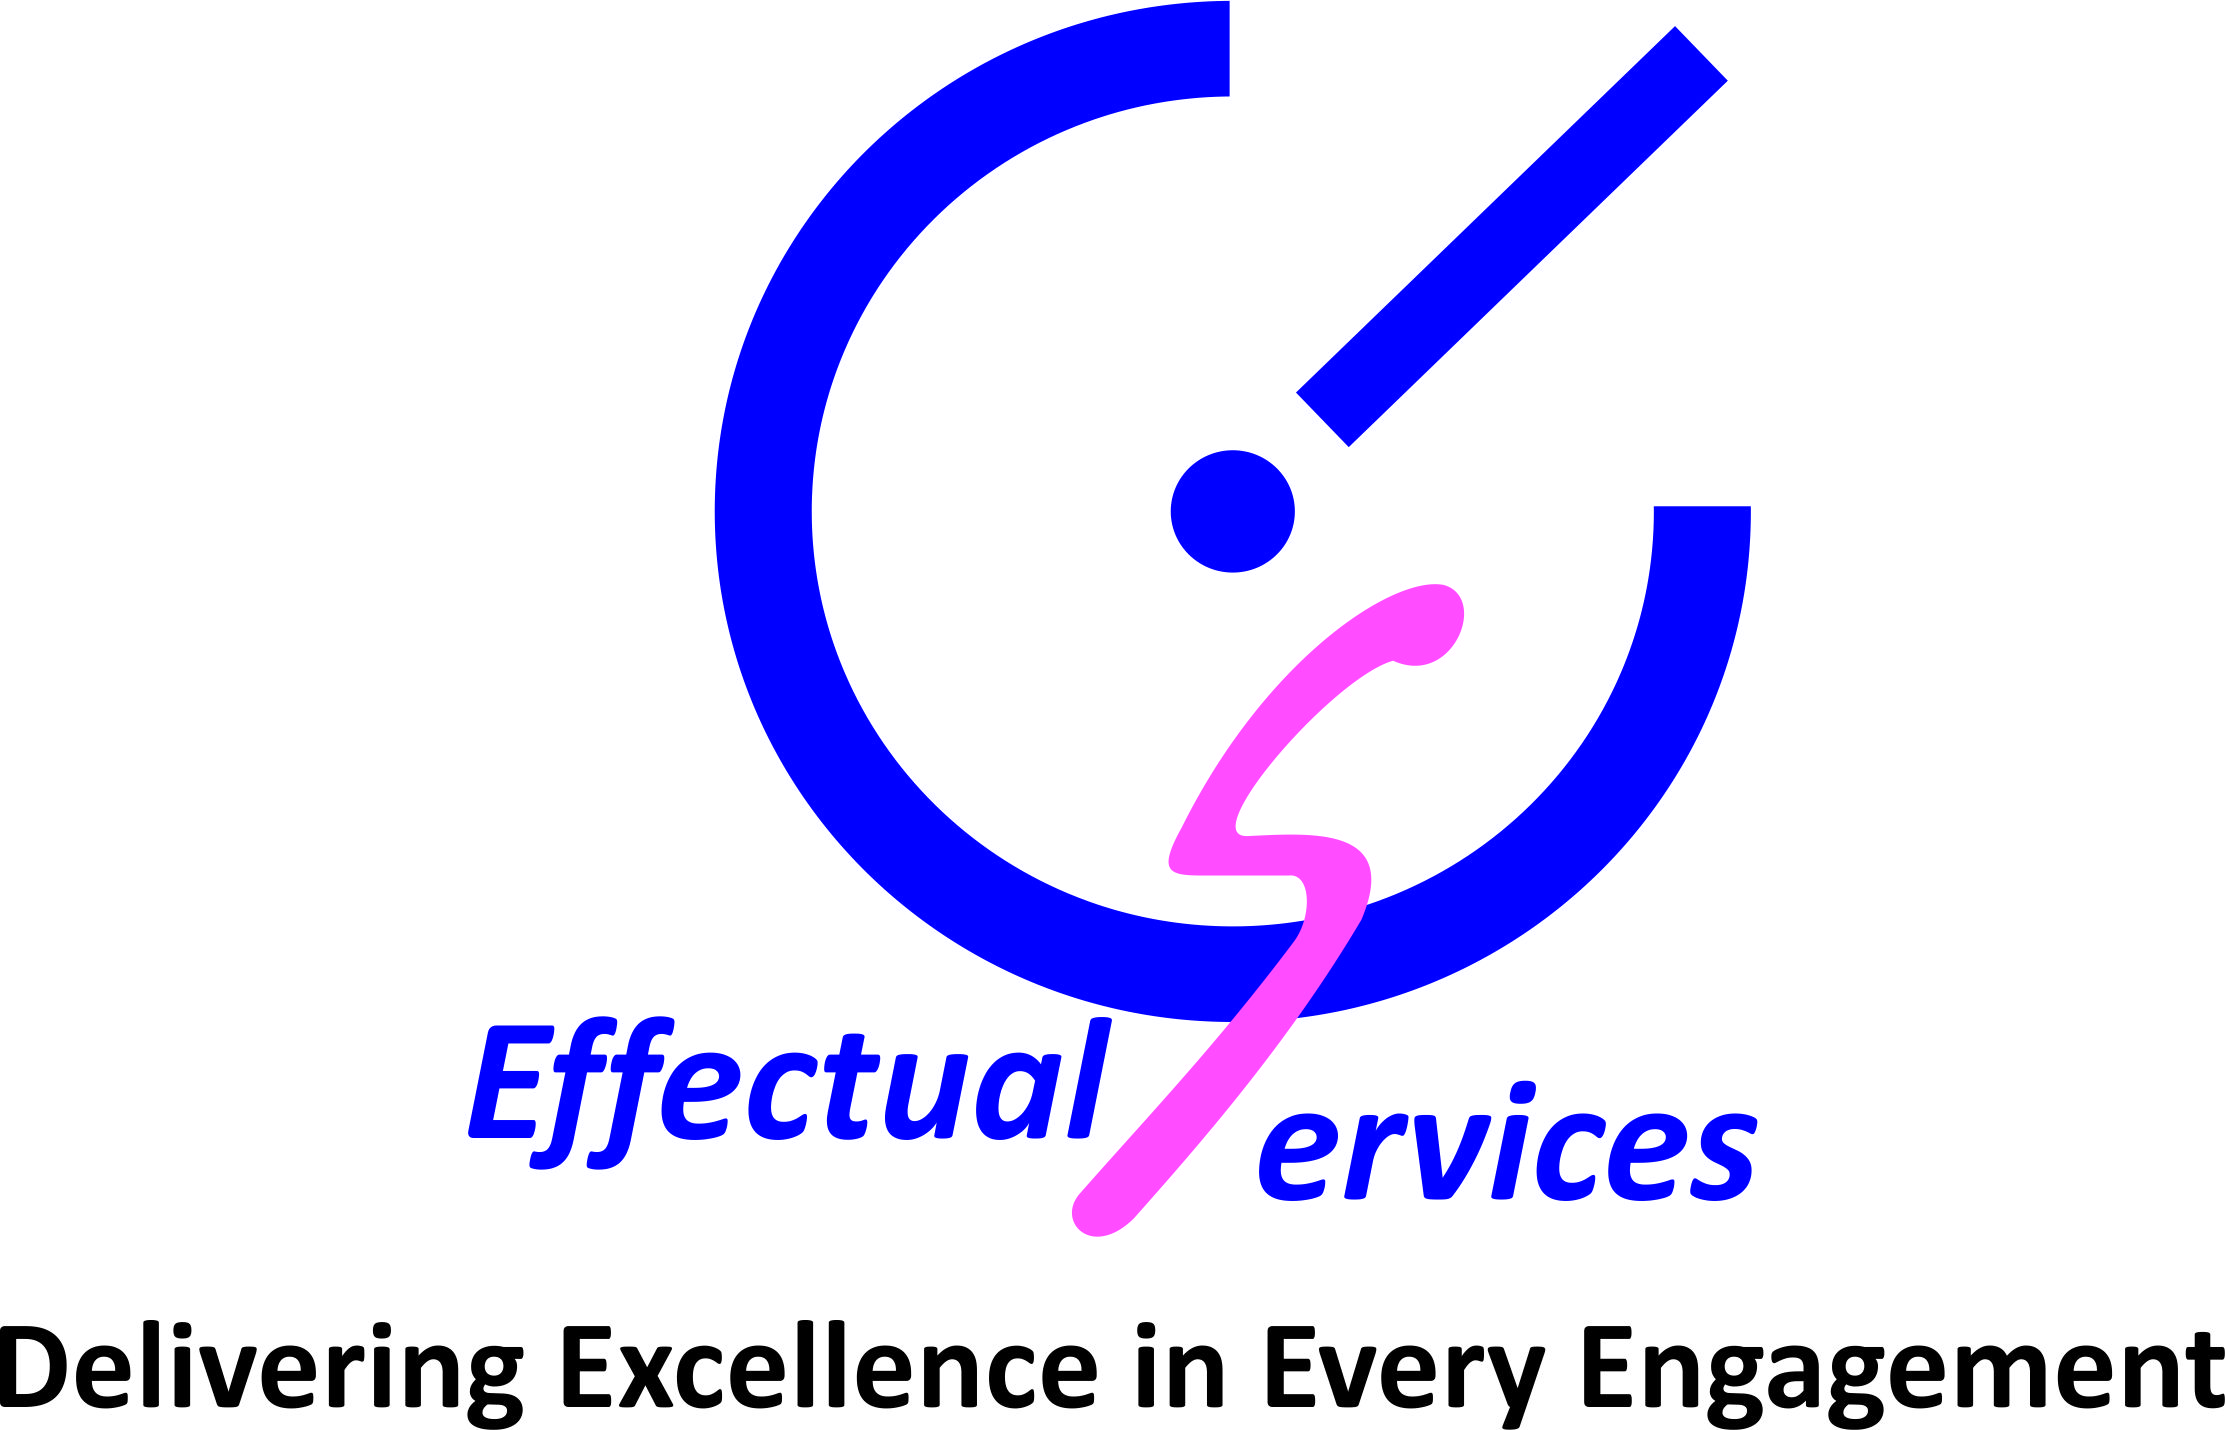 Effectual Knowledge Services Pvt Ltd